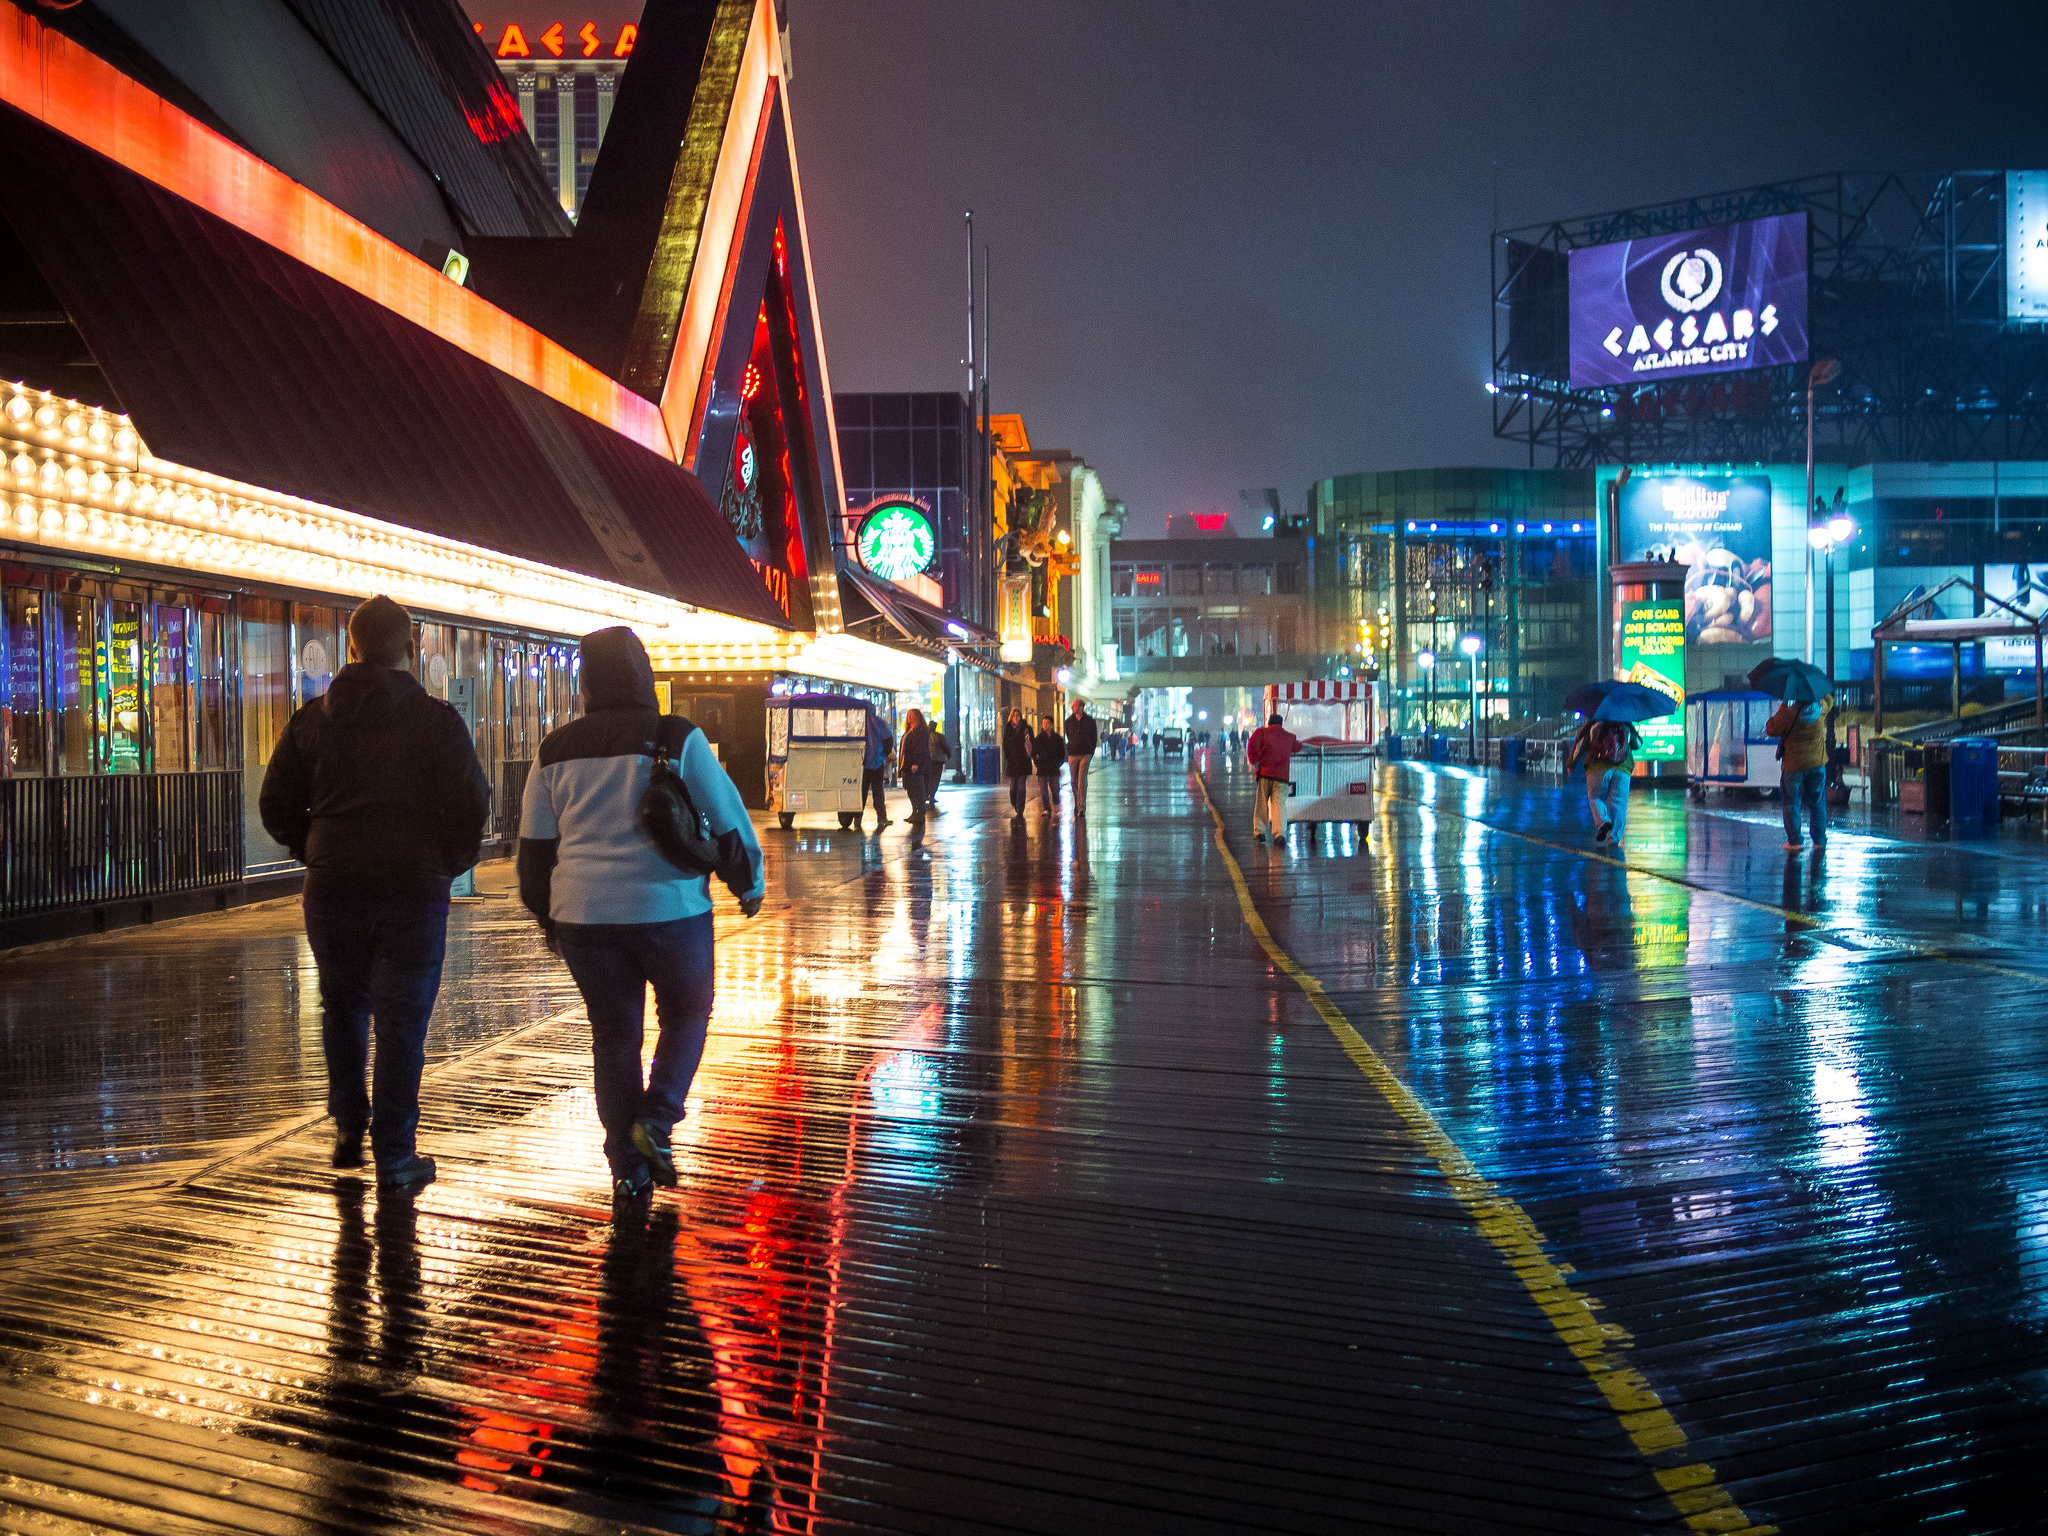 """Atlantic City Boardwalk at Night"" by Dave Buchhofer via Flickr Creative Commons"